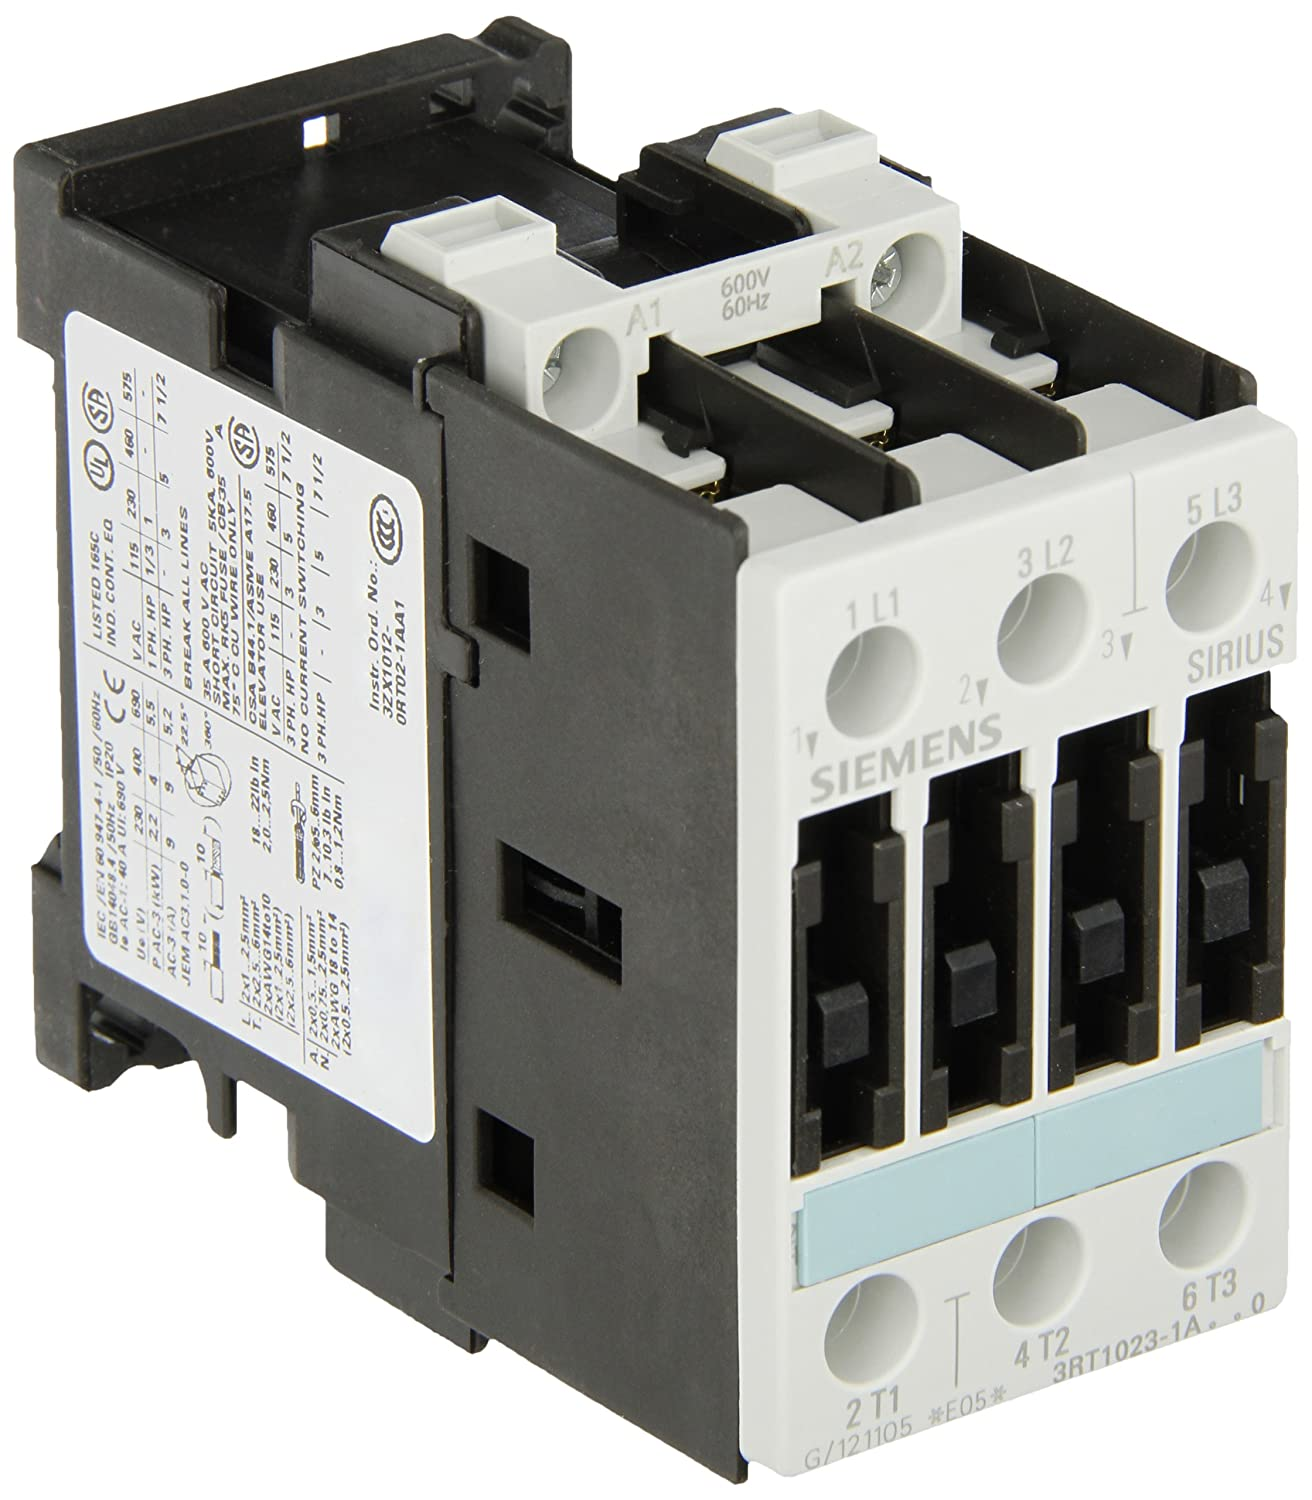 Siemens 3RT10 23-1AT60 Motor Contactor 3 Poles Screw Terminals S0 Frame Size 600V at 60Hz AC Coil Voltage 3RT10231AT60